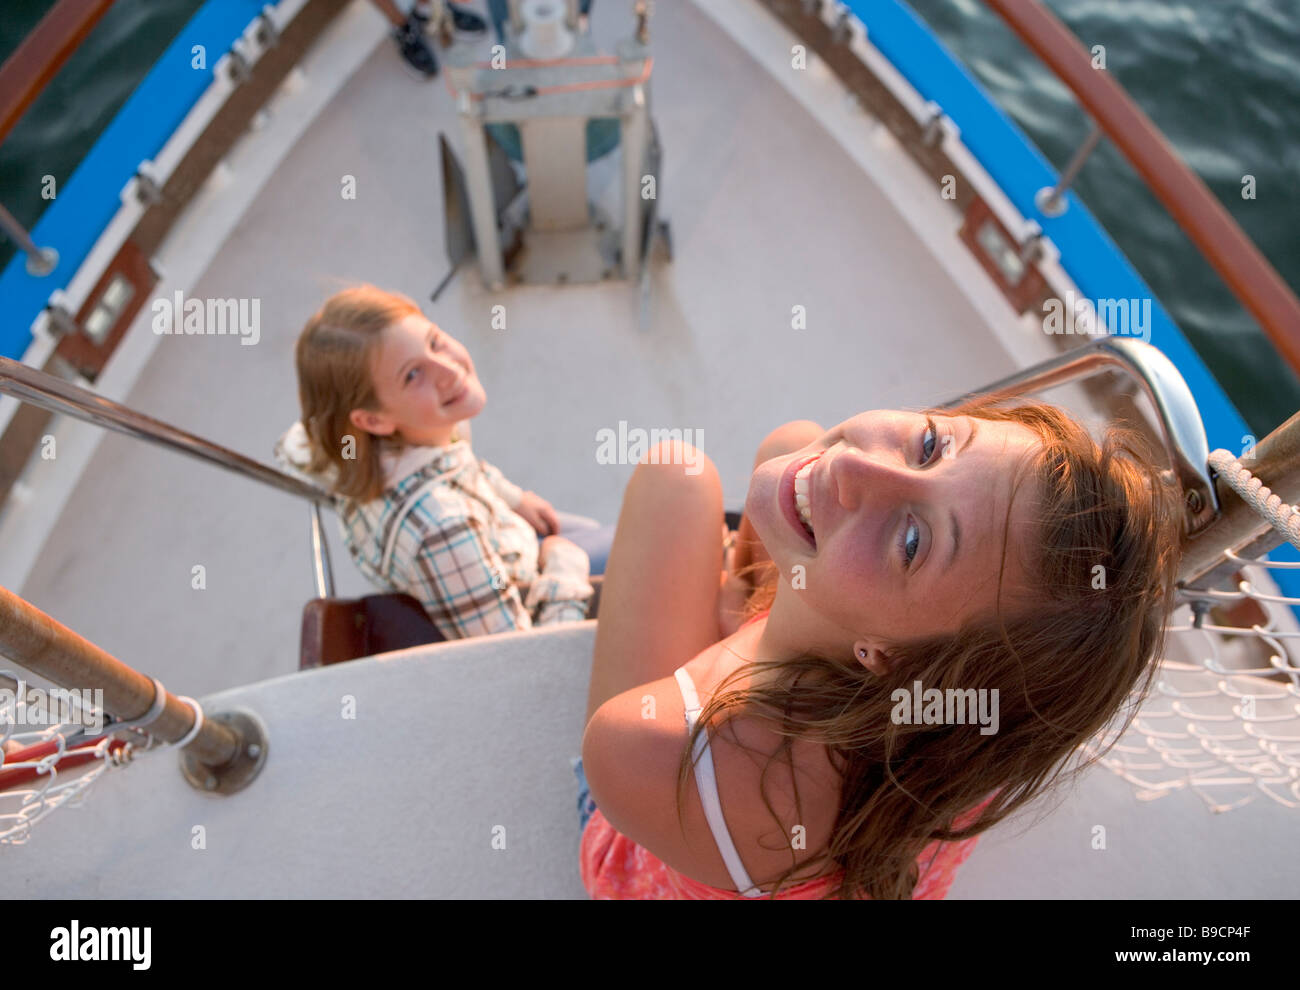 Two teen-aged girls near the bow of a tour boat at sunset - Stock Image